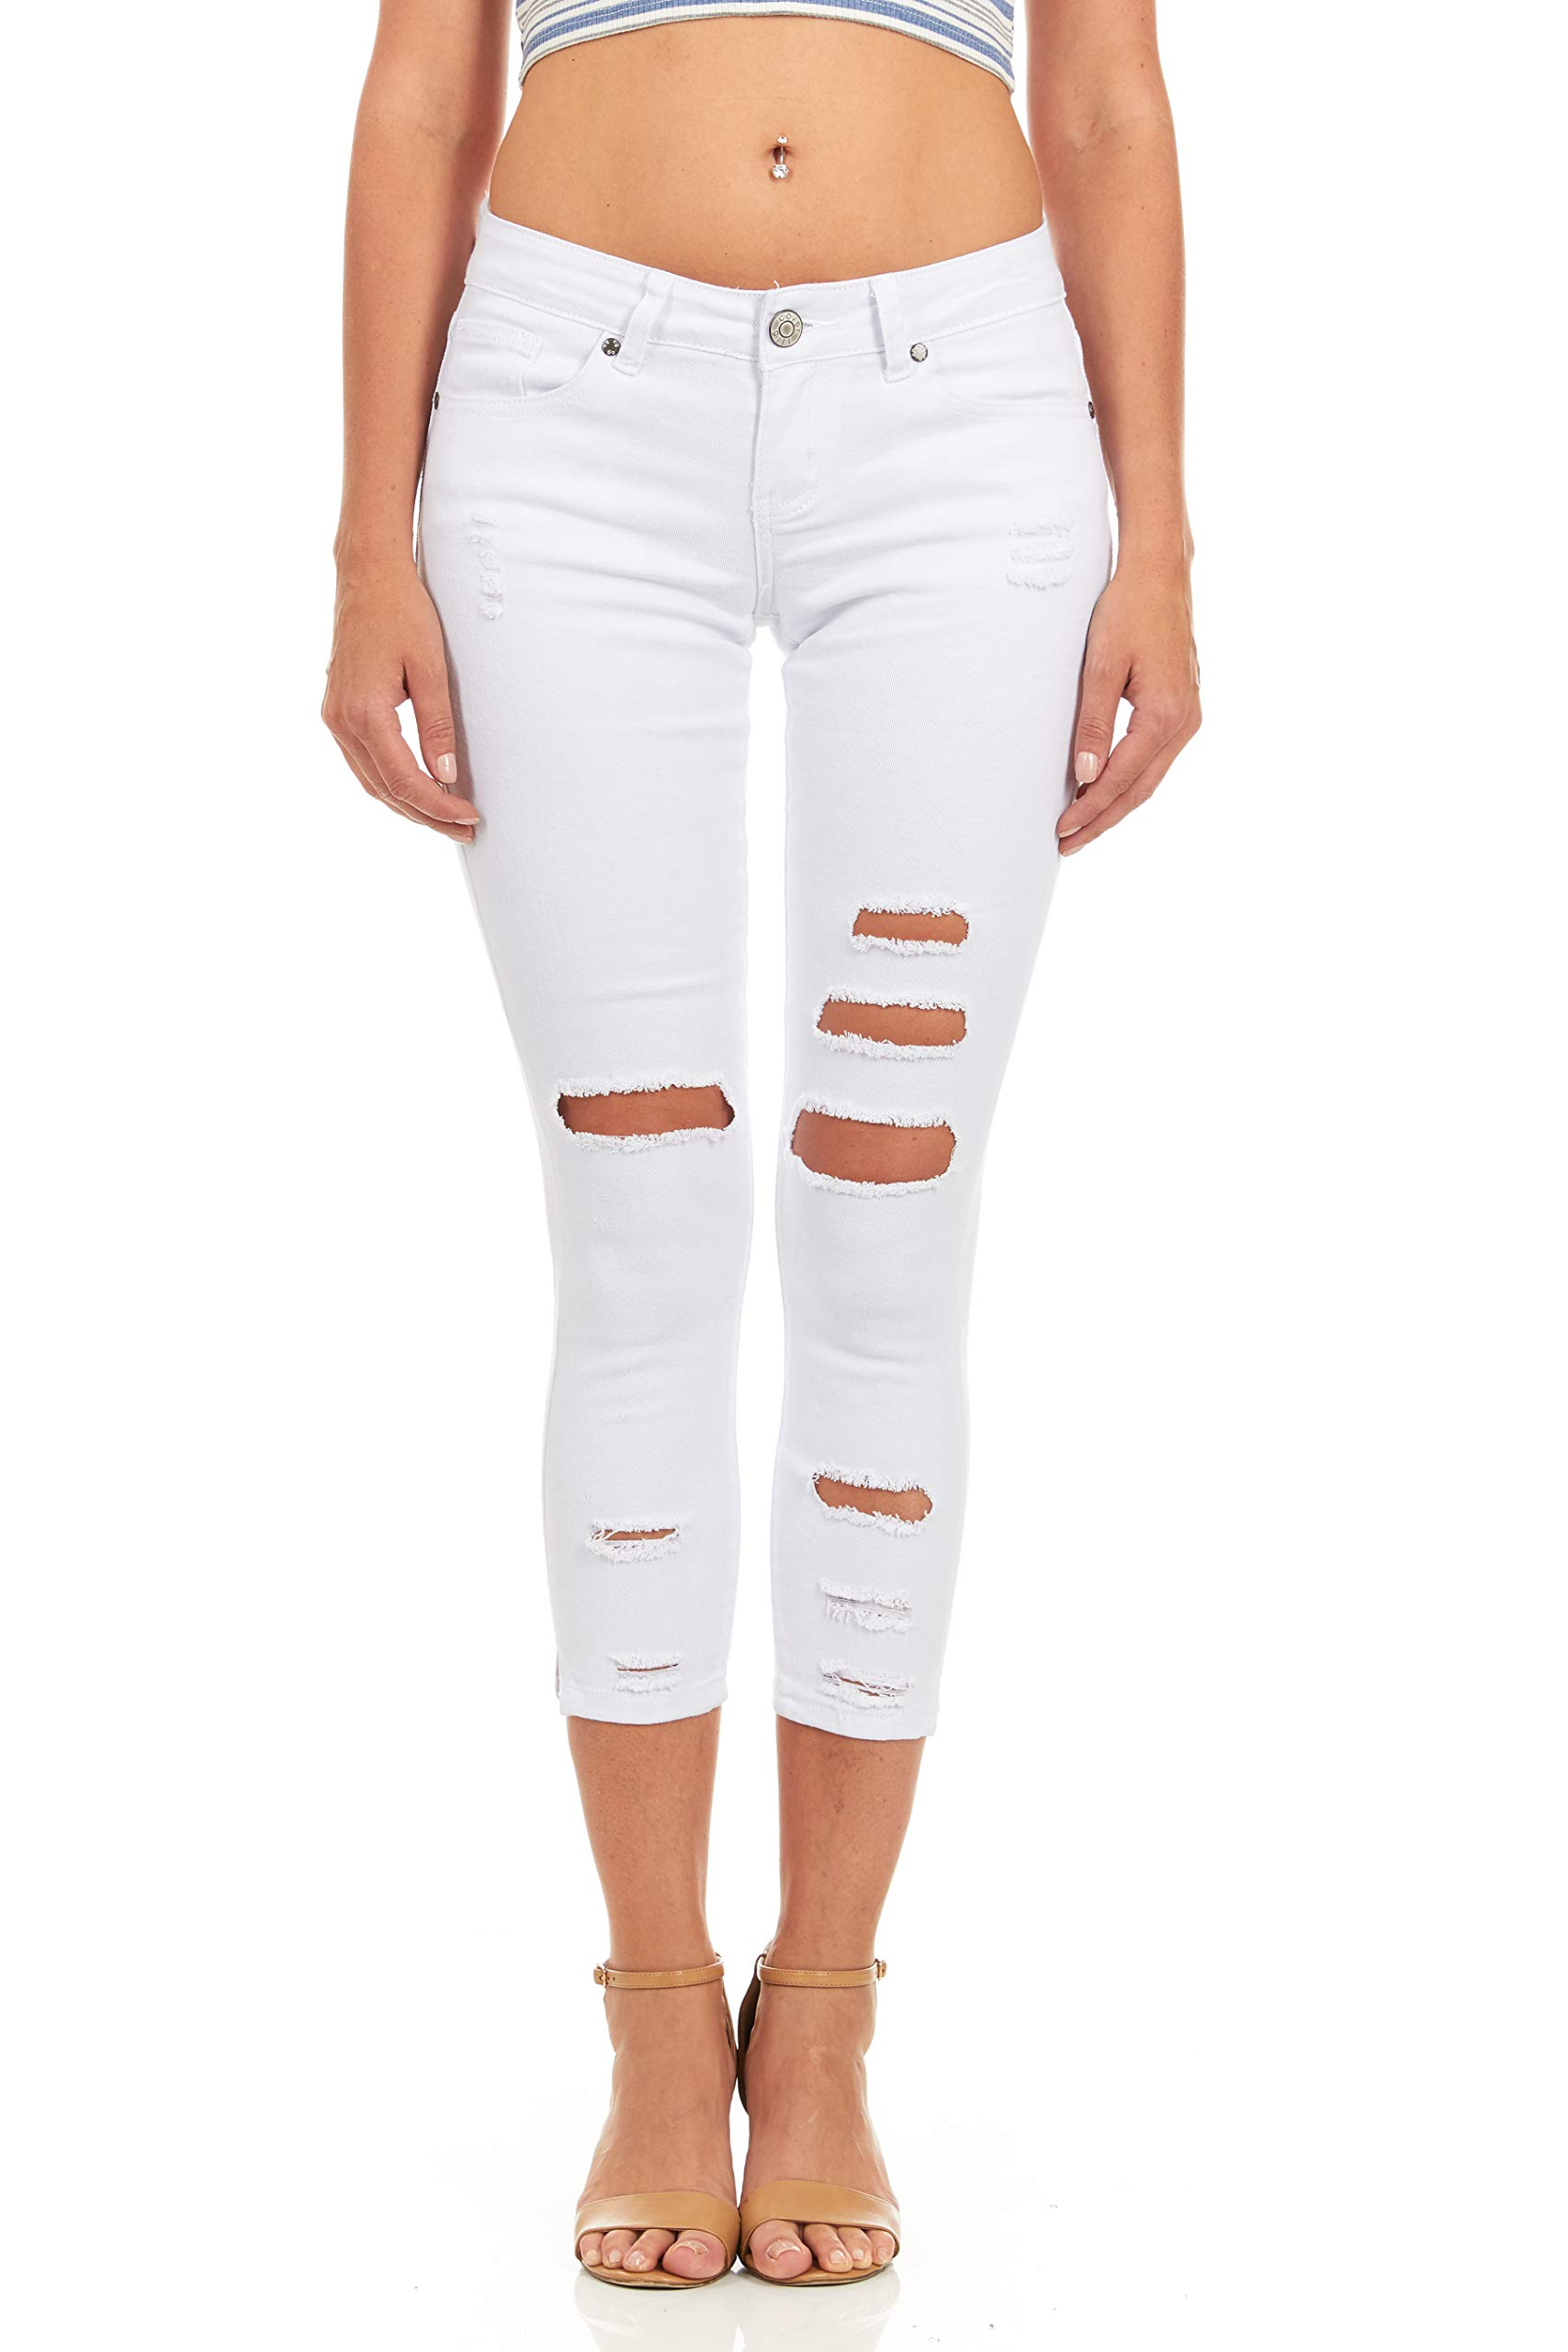 Cover Girl Women's Ripped Cropped Skinny Jeans, Sexy White, 11